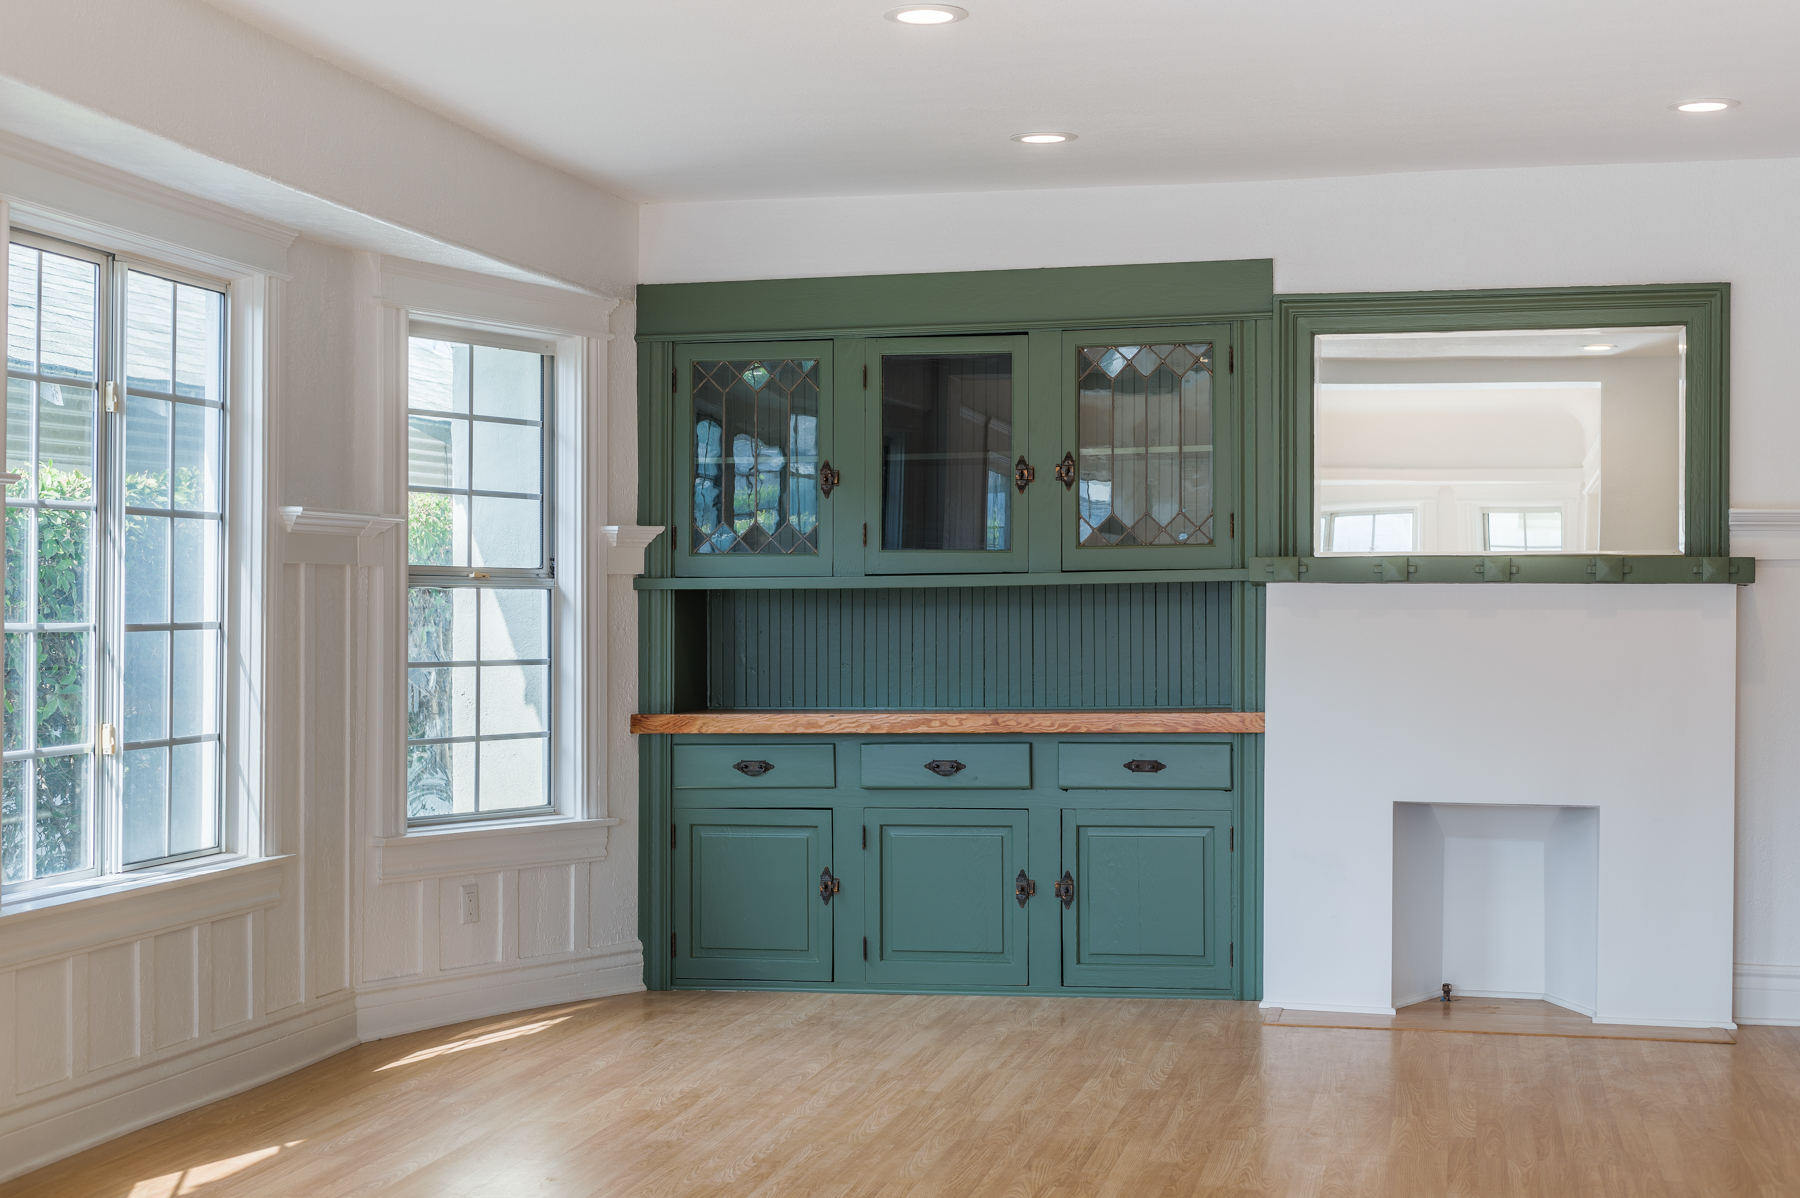 Sprawling Craftsman  Duplex - Beautifully Renovated - Insta Worthy Kitchen - Nest AC/Heat- Private Outdoor Patio- Close to USC!